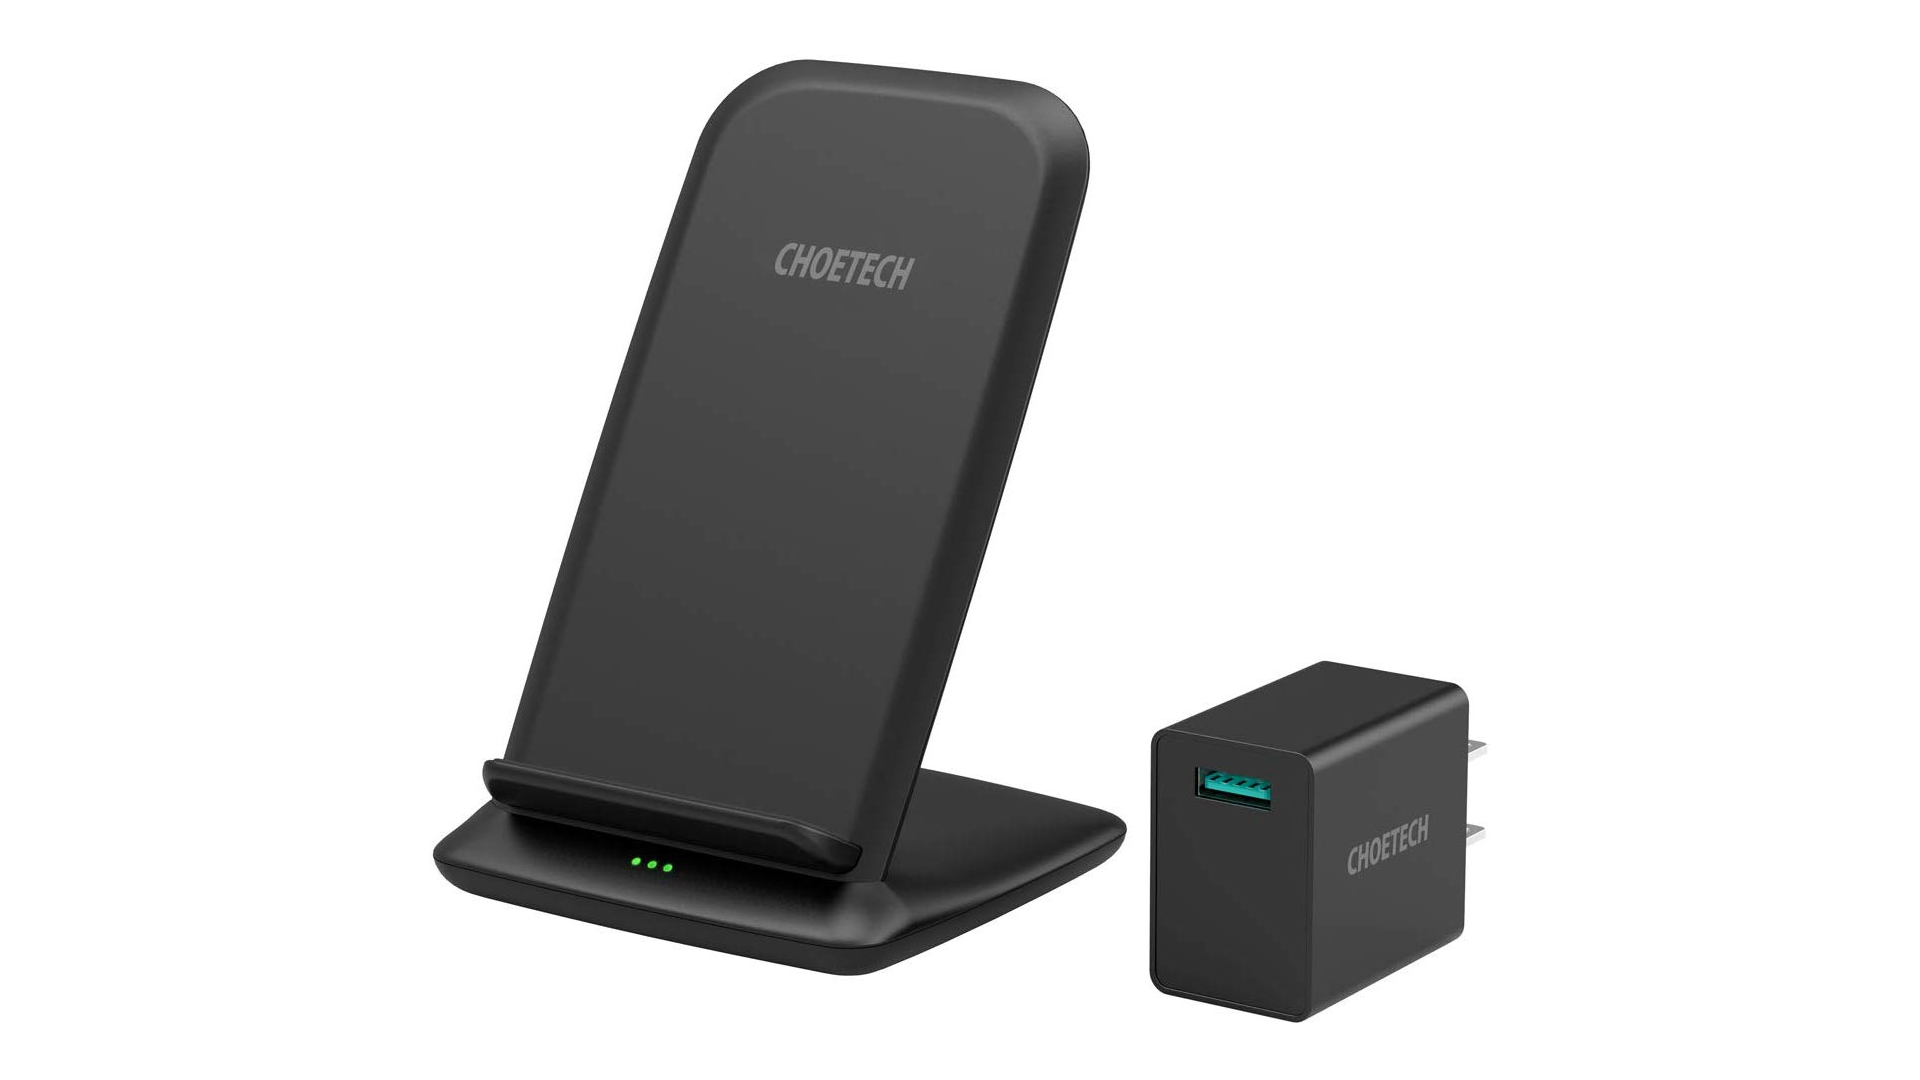 The CHOETECH wireless charging stand